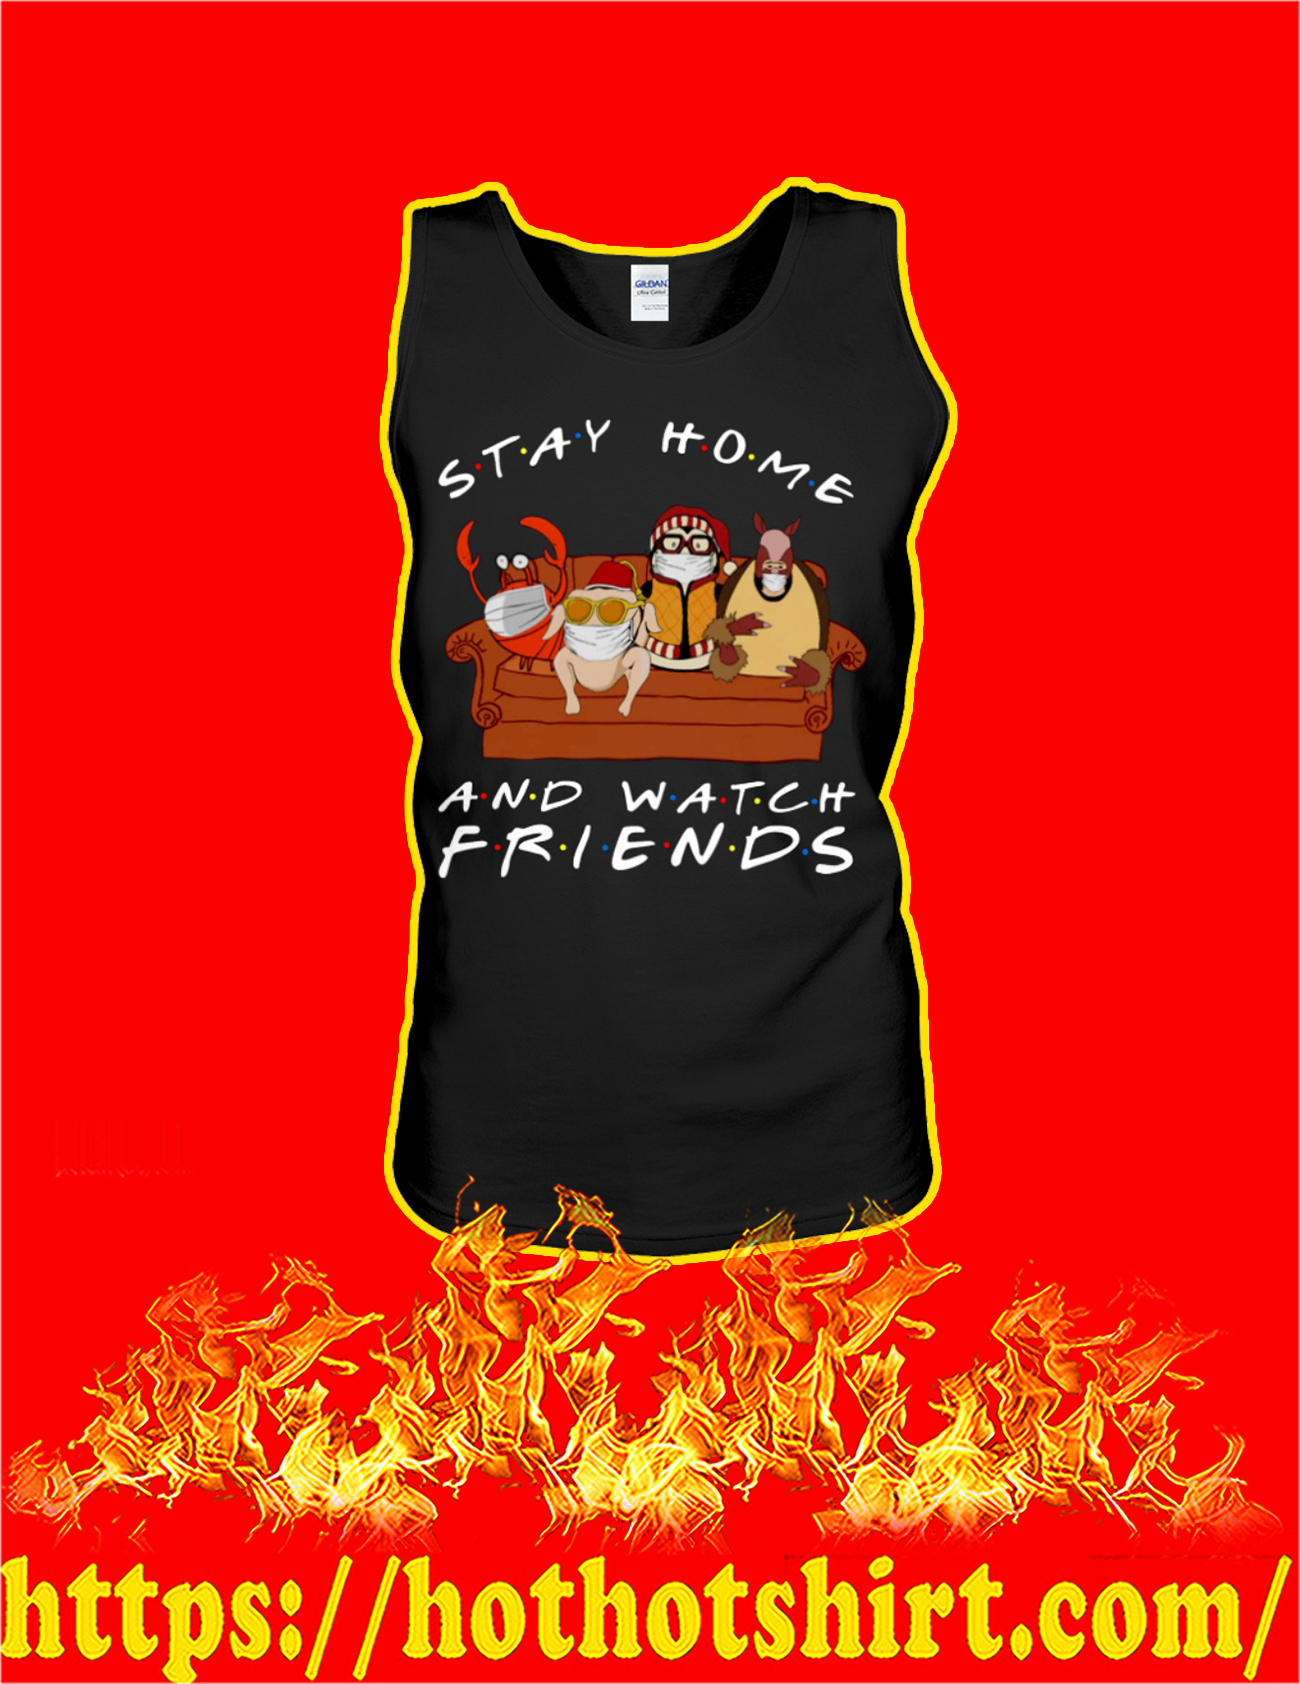 Stay home and watch friends tank top